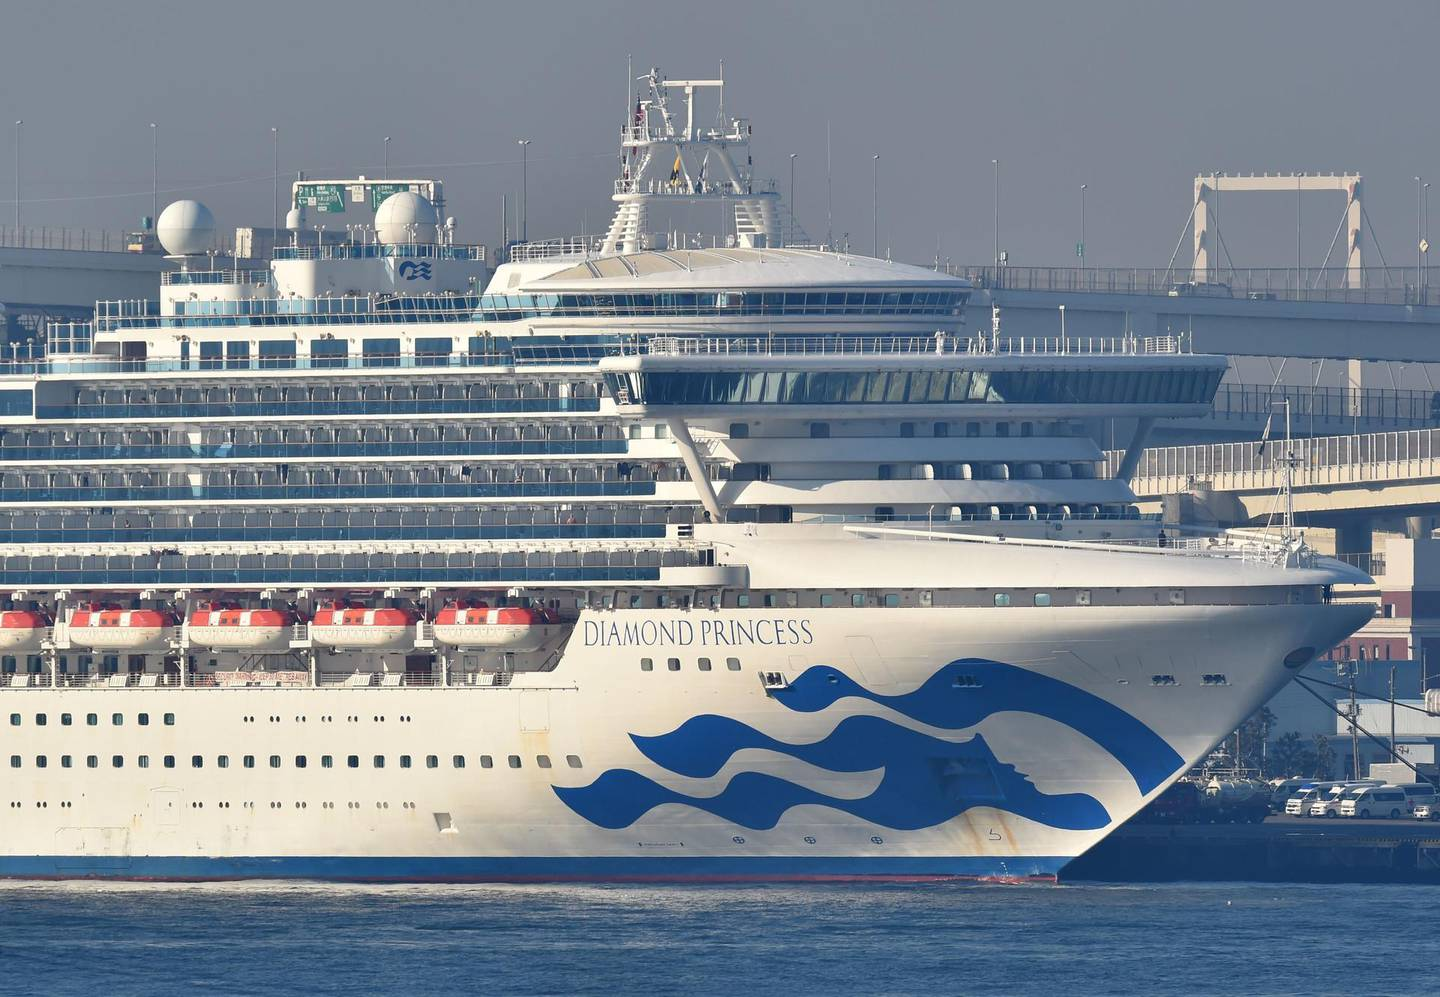 The Diamond Princess cruise ship is seen anchored at the Daikoku Pier Cruise Terminal in Yokohama port on February 13, 2020. At least 218 people on board a cruise ship quarantined off Japan have tested positive for the novel COVID-19 coronavirus, authorities said February 13 as they announced plans to move some elderly passengers off the ship. / AFP / Kazuhiro NOGI